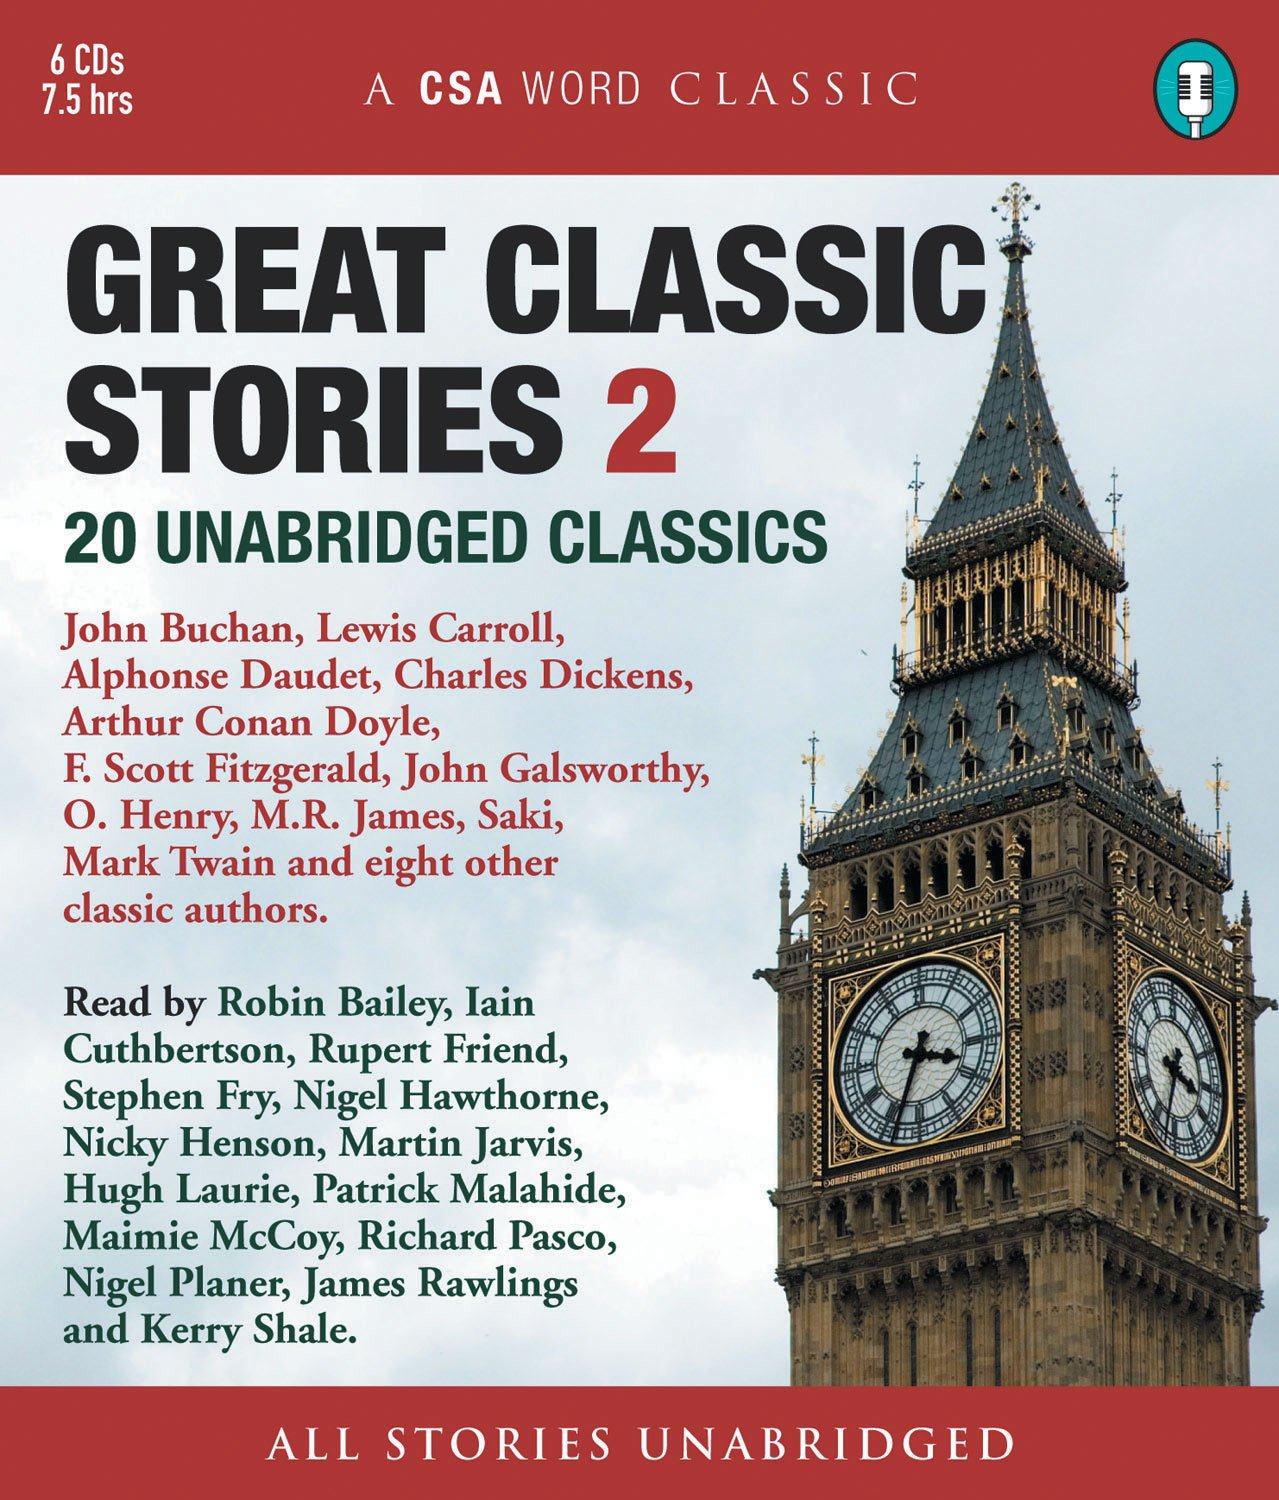 Great Classic Stories 2: 20 Unabridged Classics (A CSA Word Classic) by Brand: CSA Word